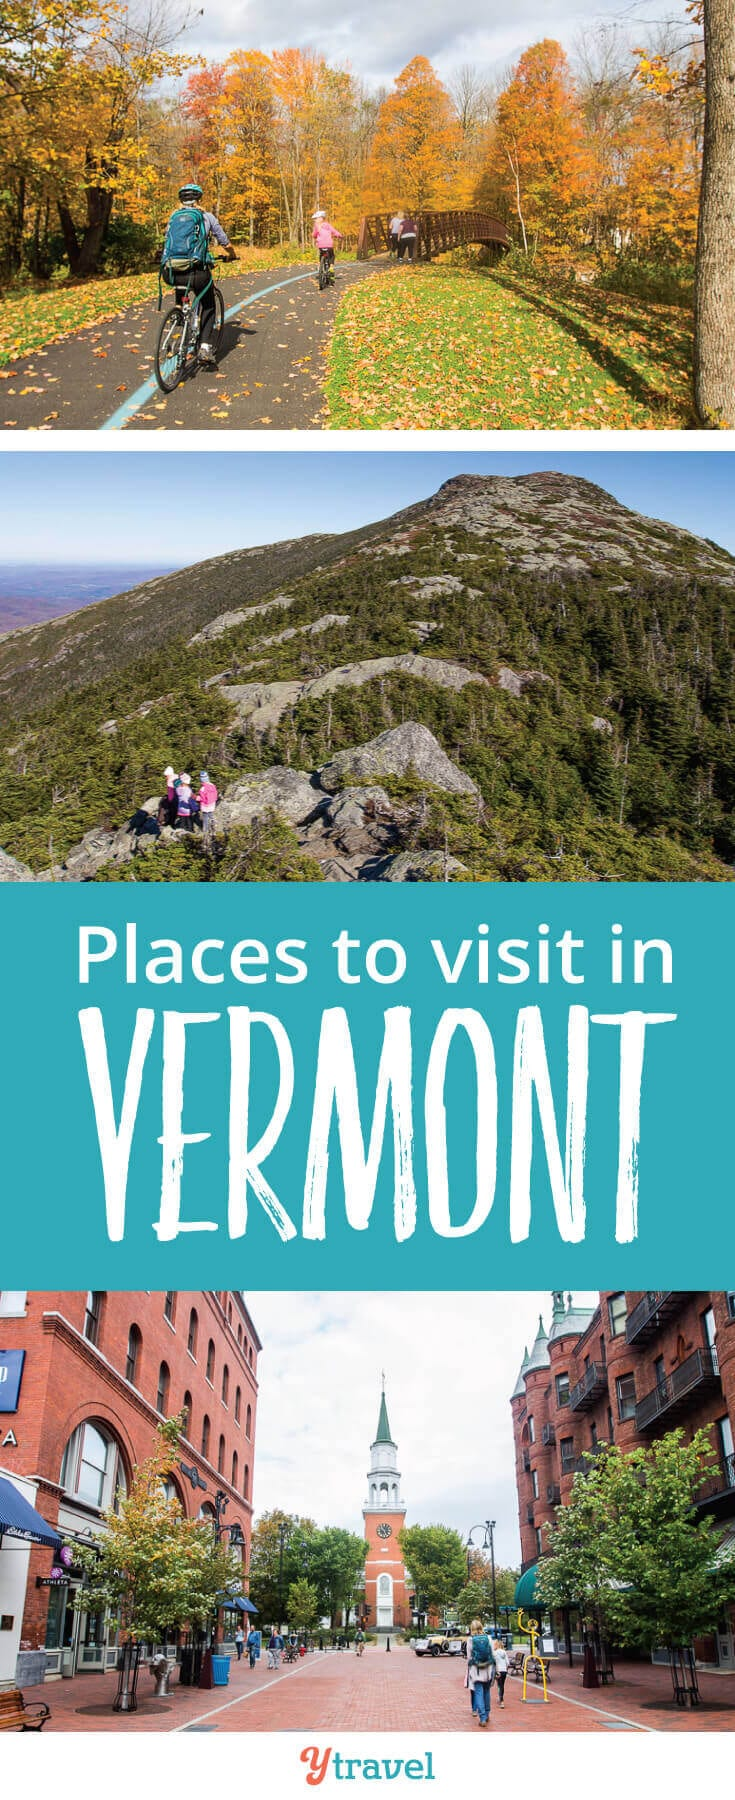 Places to Visit in Vermont, New England. Planning a trip to Vermont? Put these 6 places on your itinerary.